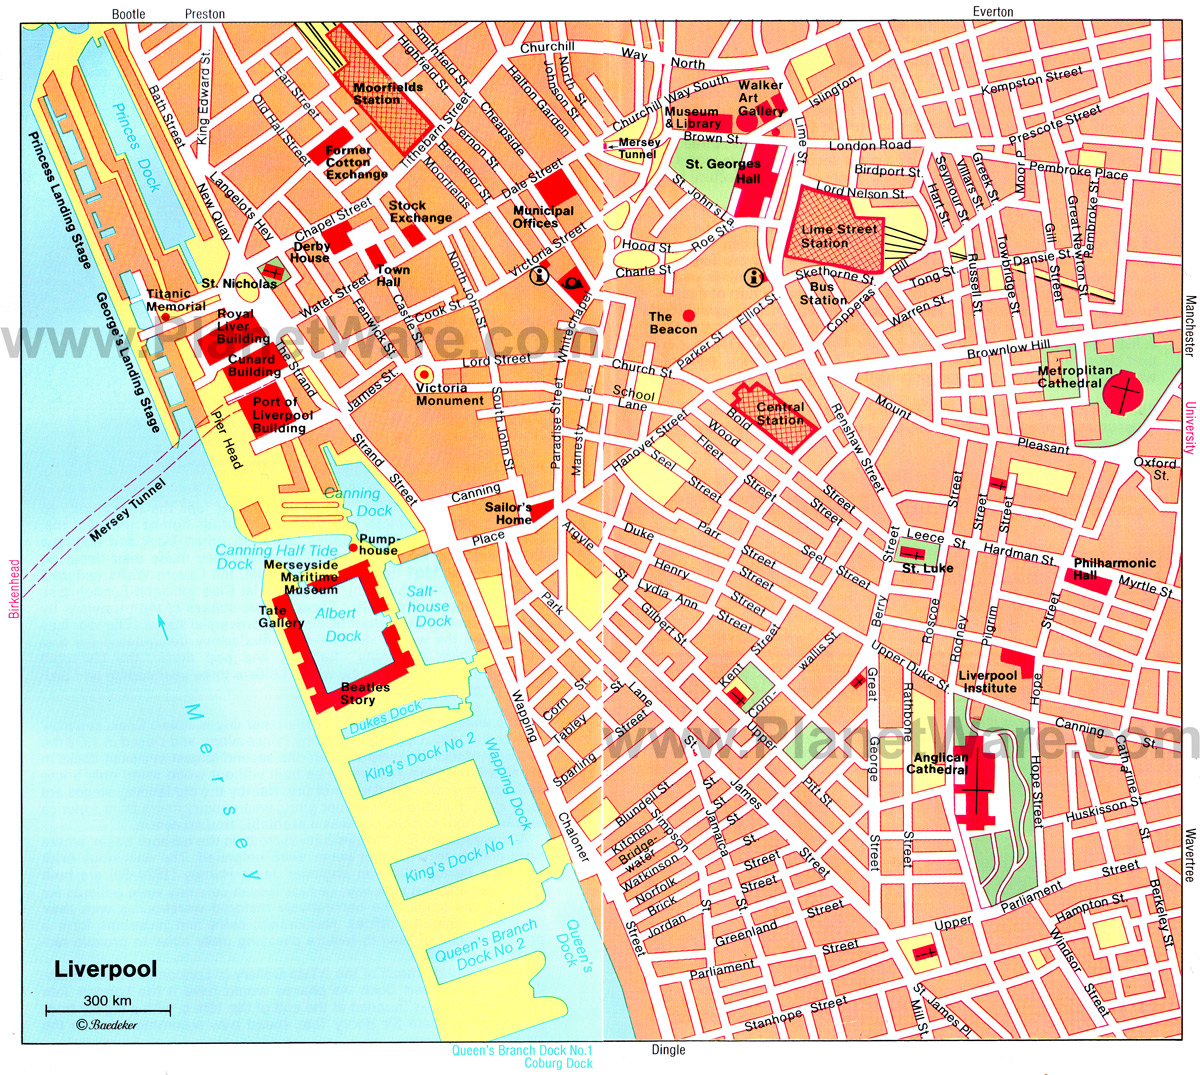 Street Map Of Liverpool Large Liverpool Maps for Free Download and Print | High Resolution